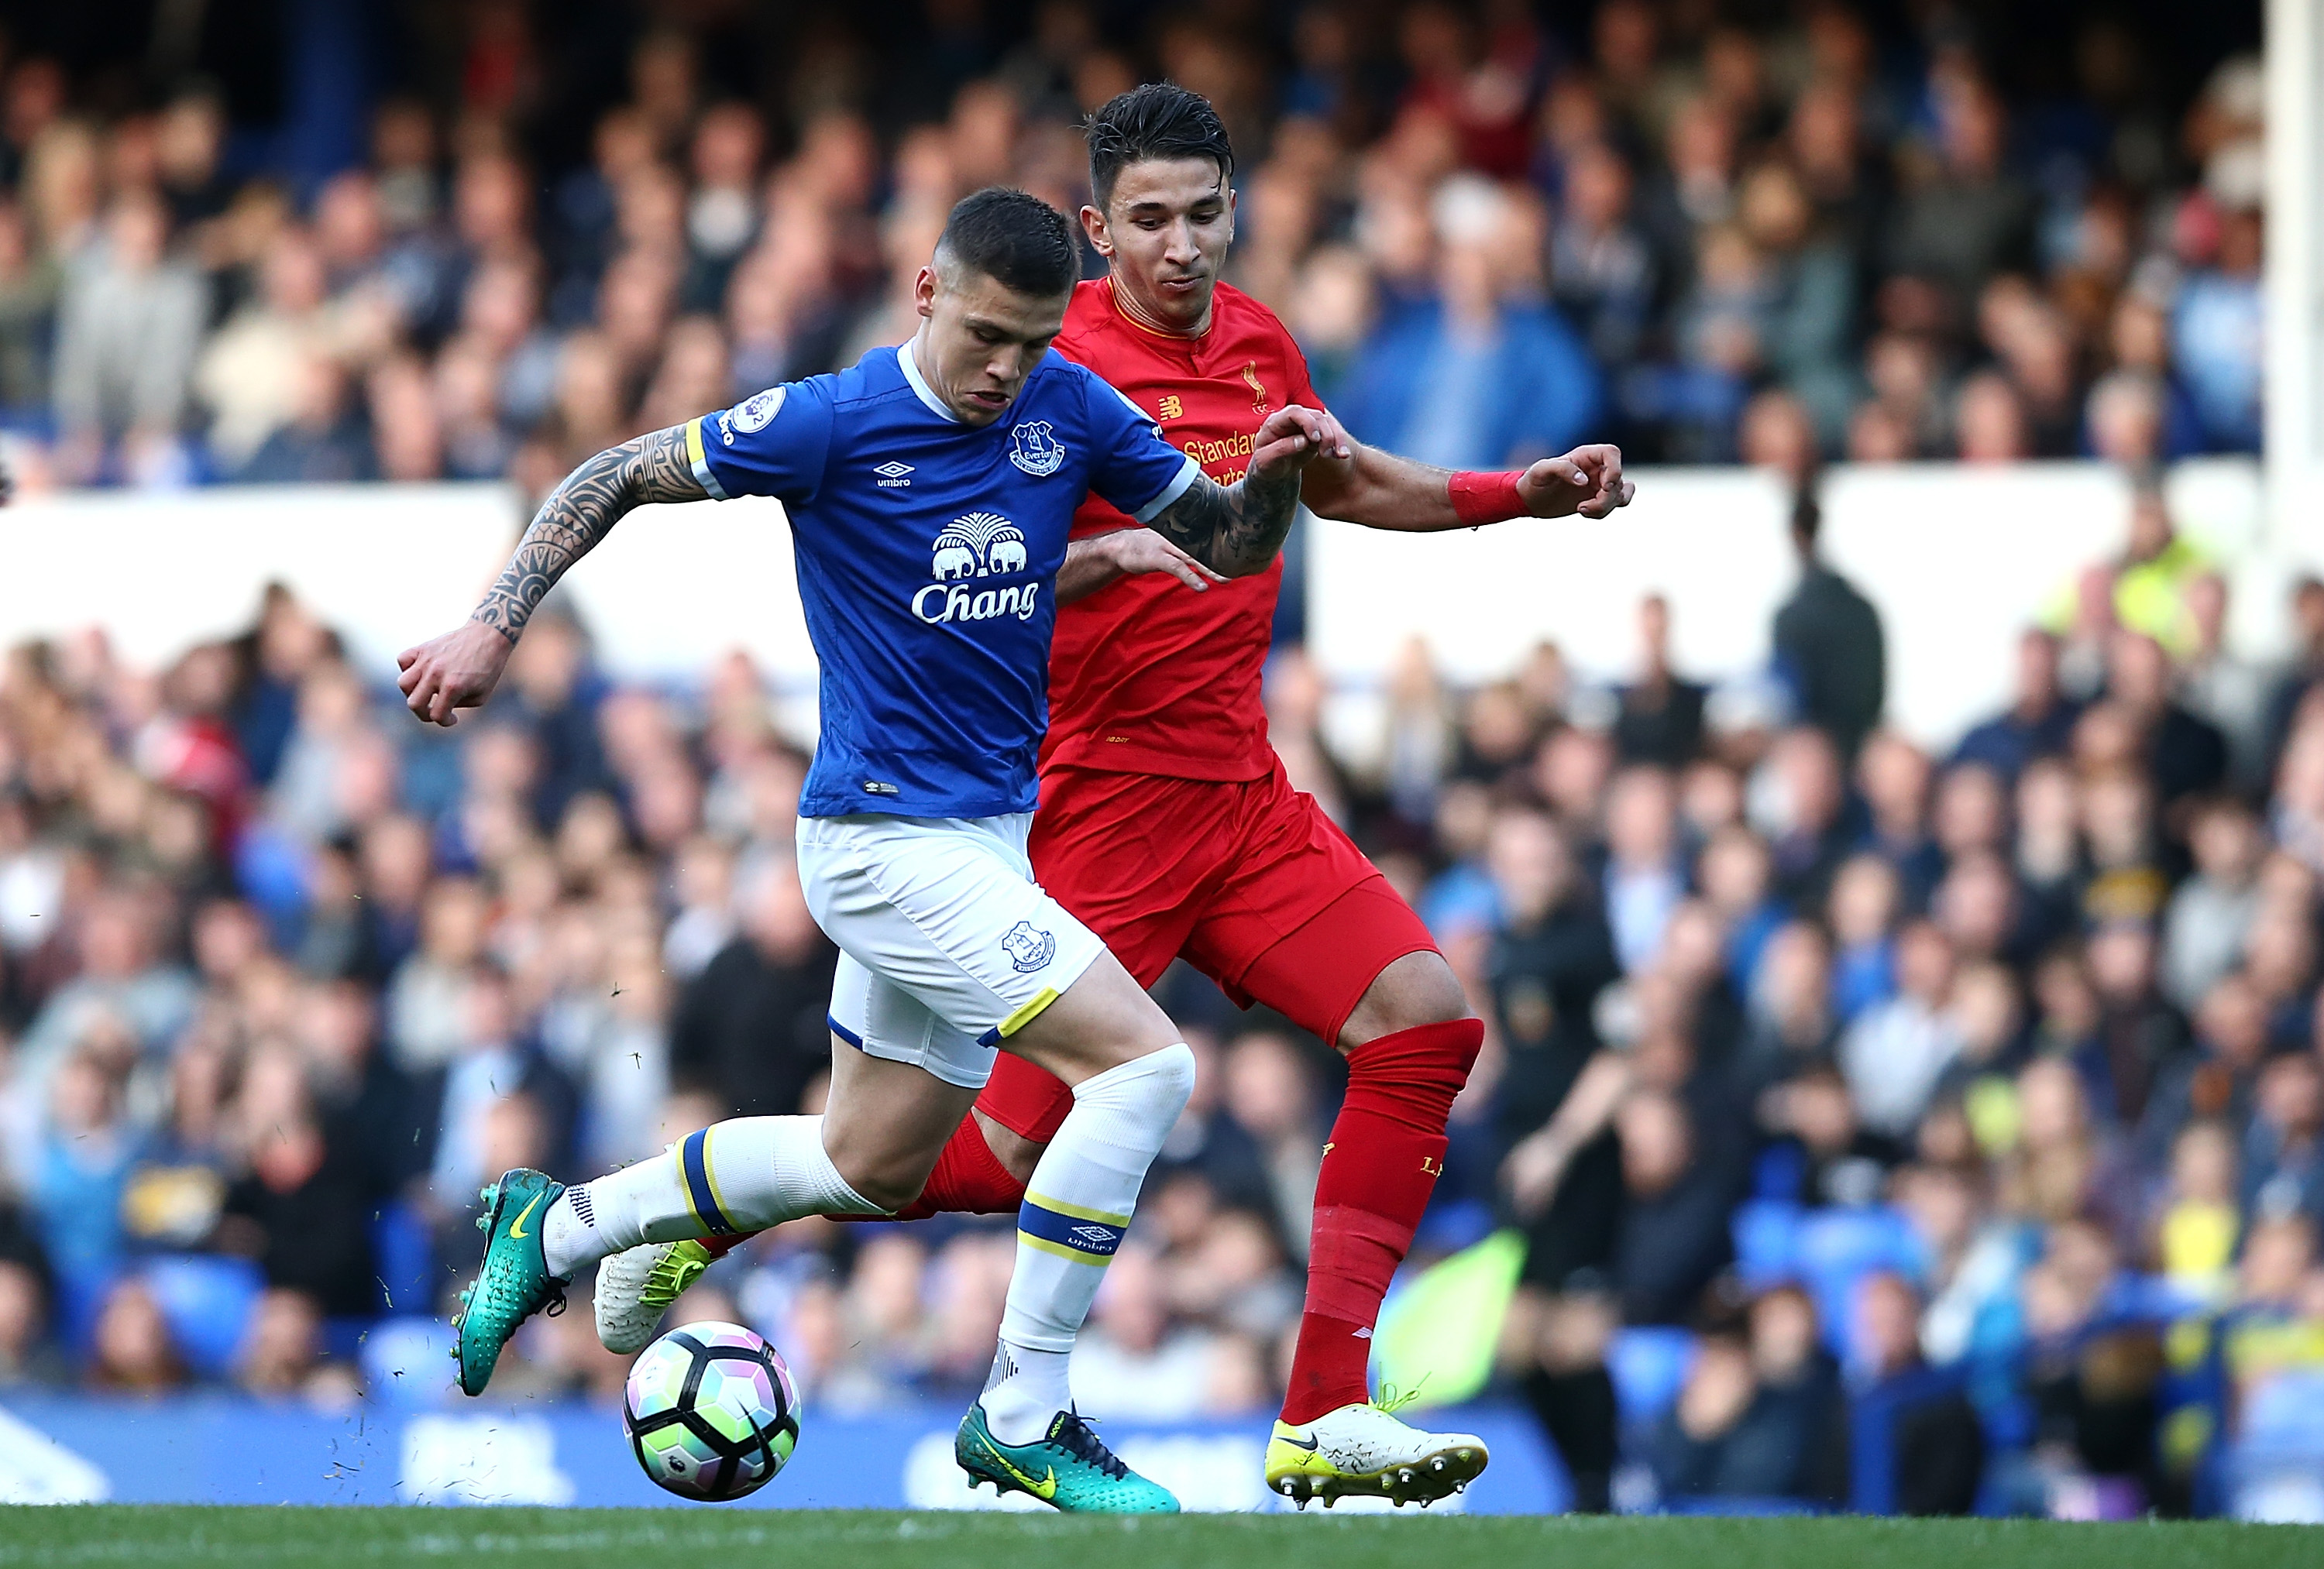 Everton's Ramiro Funes Mori out for six to nine months after surgery